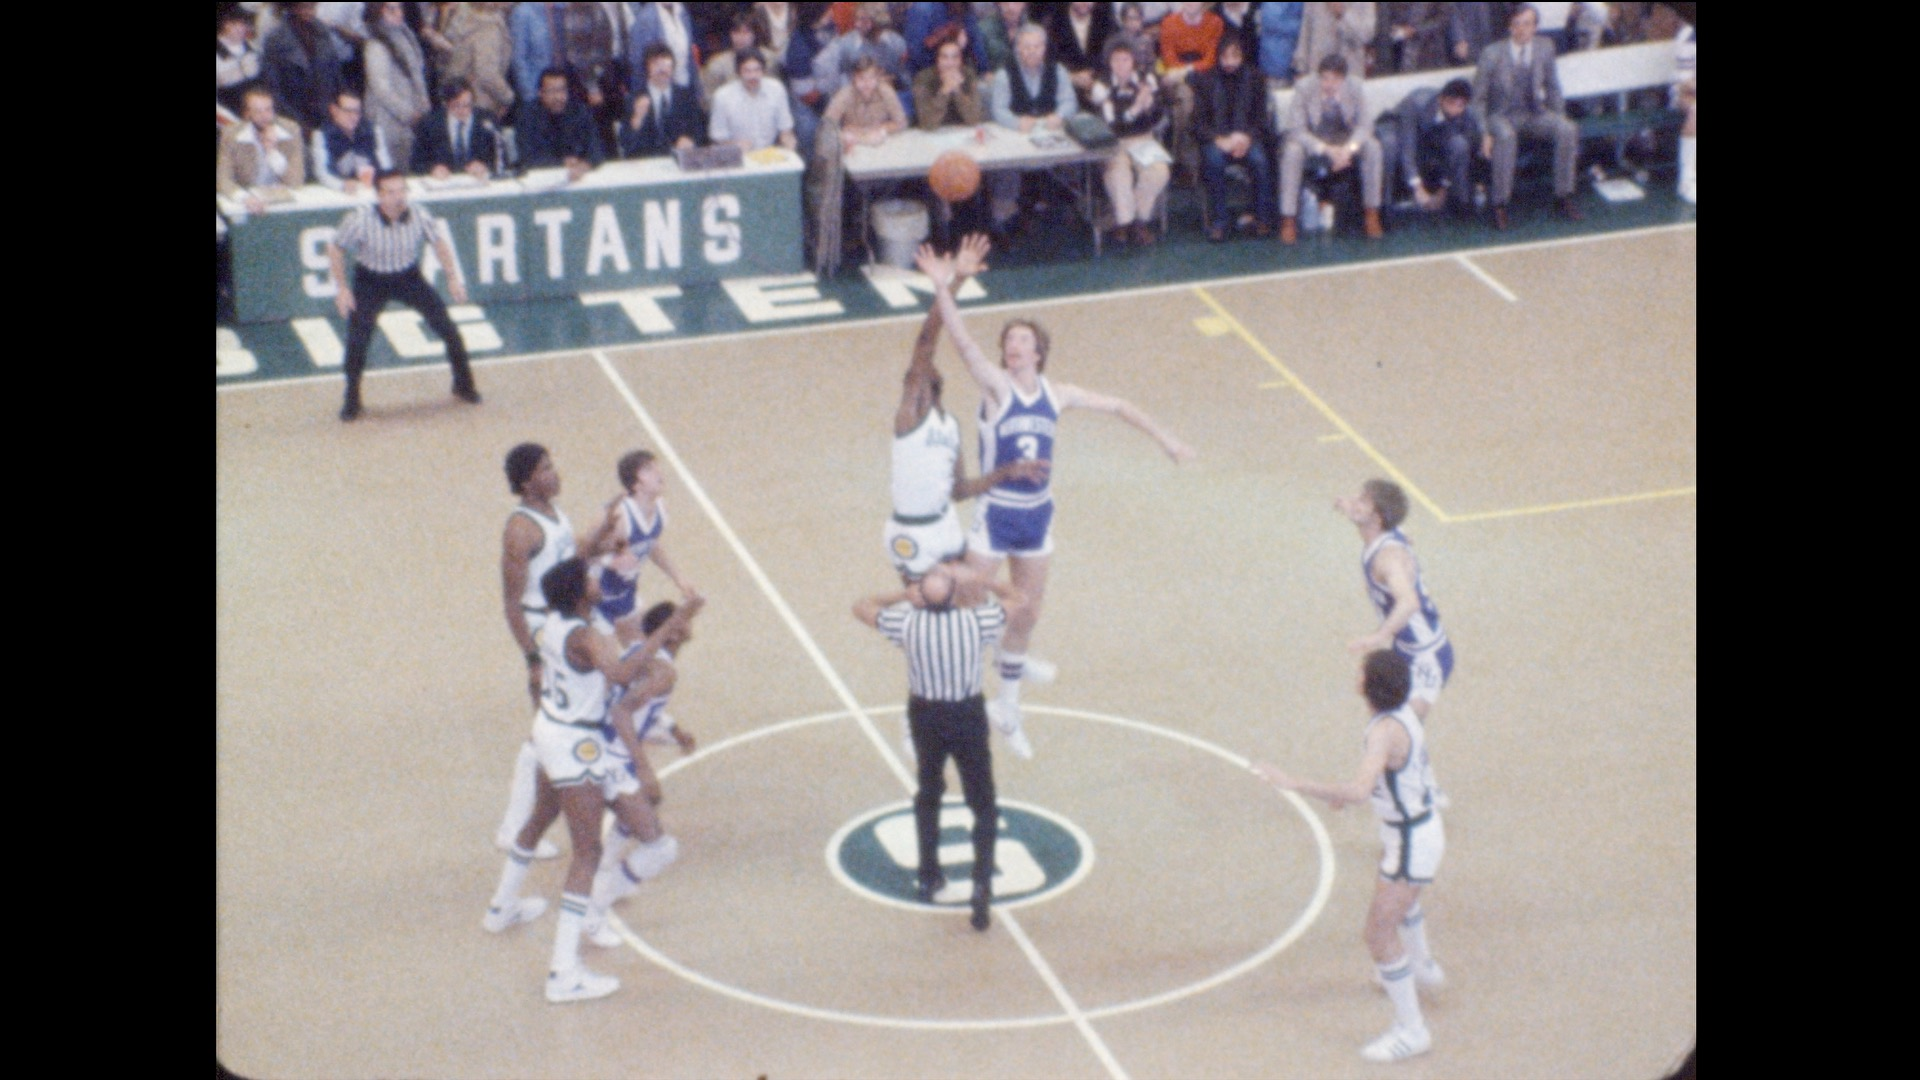 MSU Basketball vs. Northwestern (home), 1979